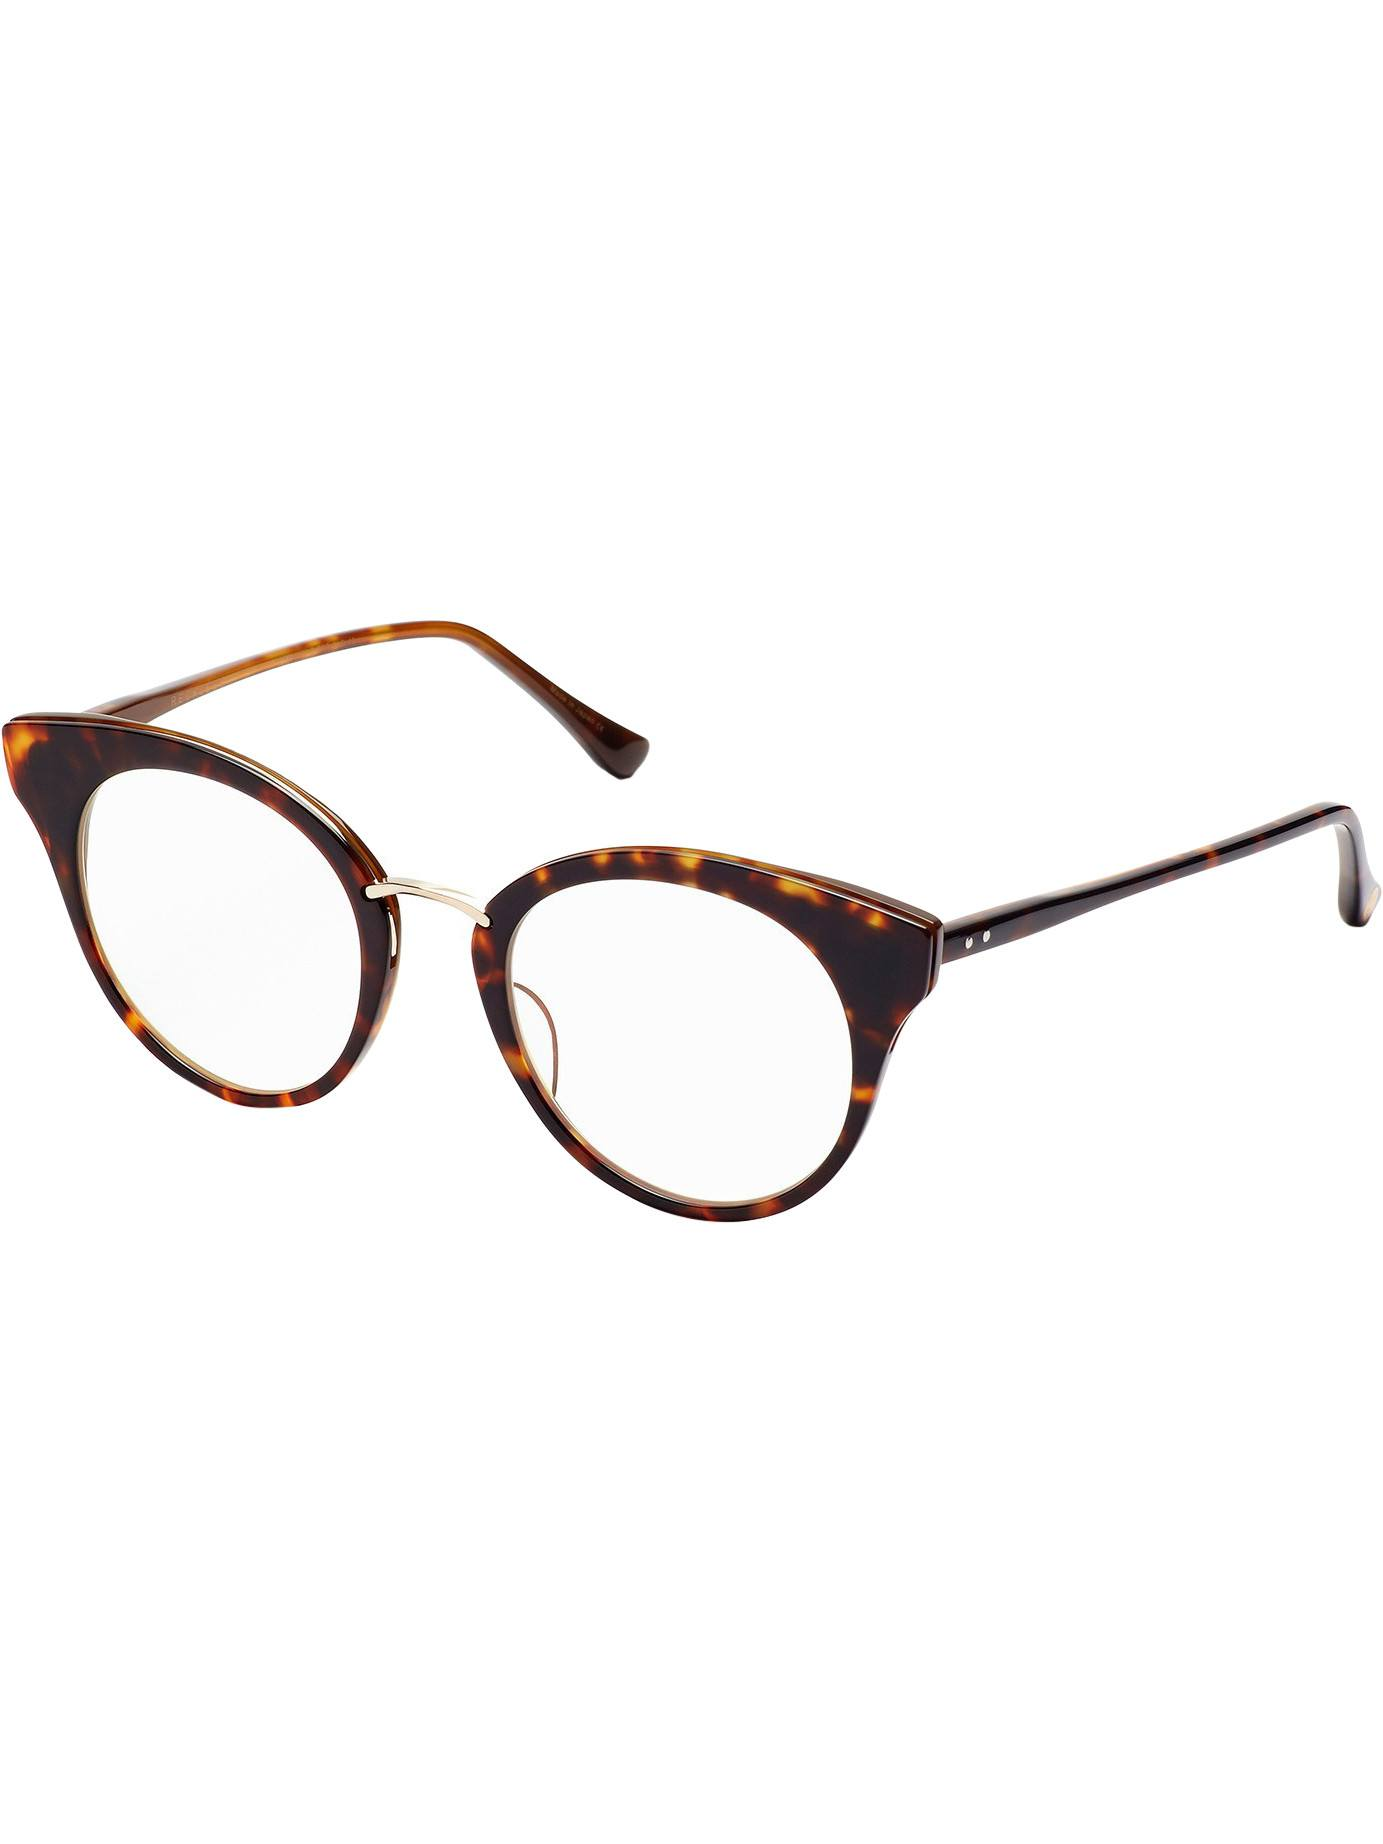 de23575a940 Optical Frame - Dita Reckless DRX-3037B Glasses